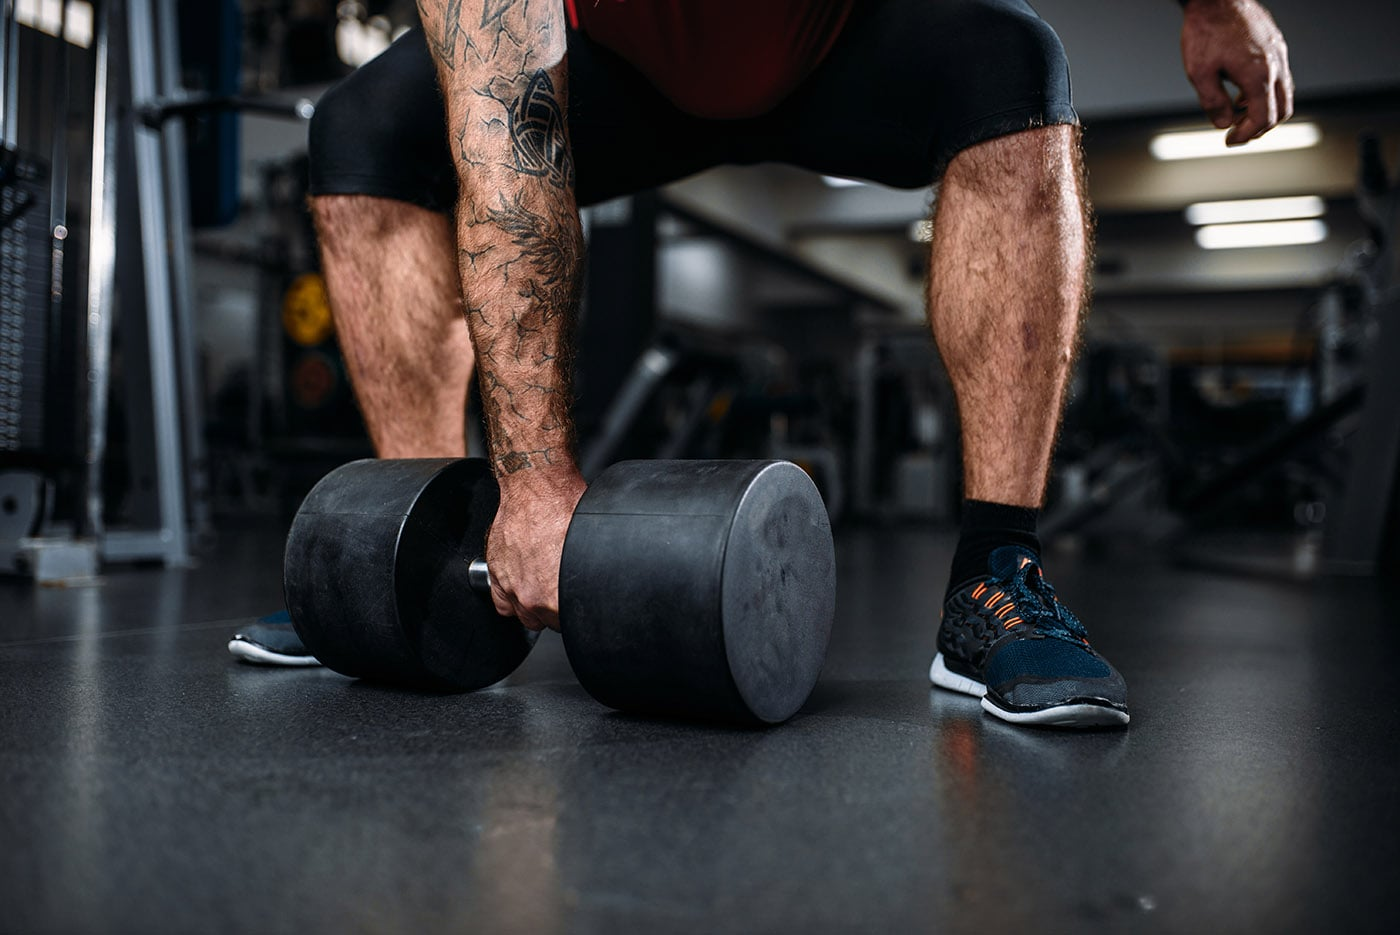 male-person-with-dumbbell-training-in-gym-37LACSK-min.jpg